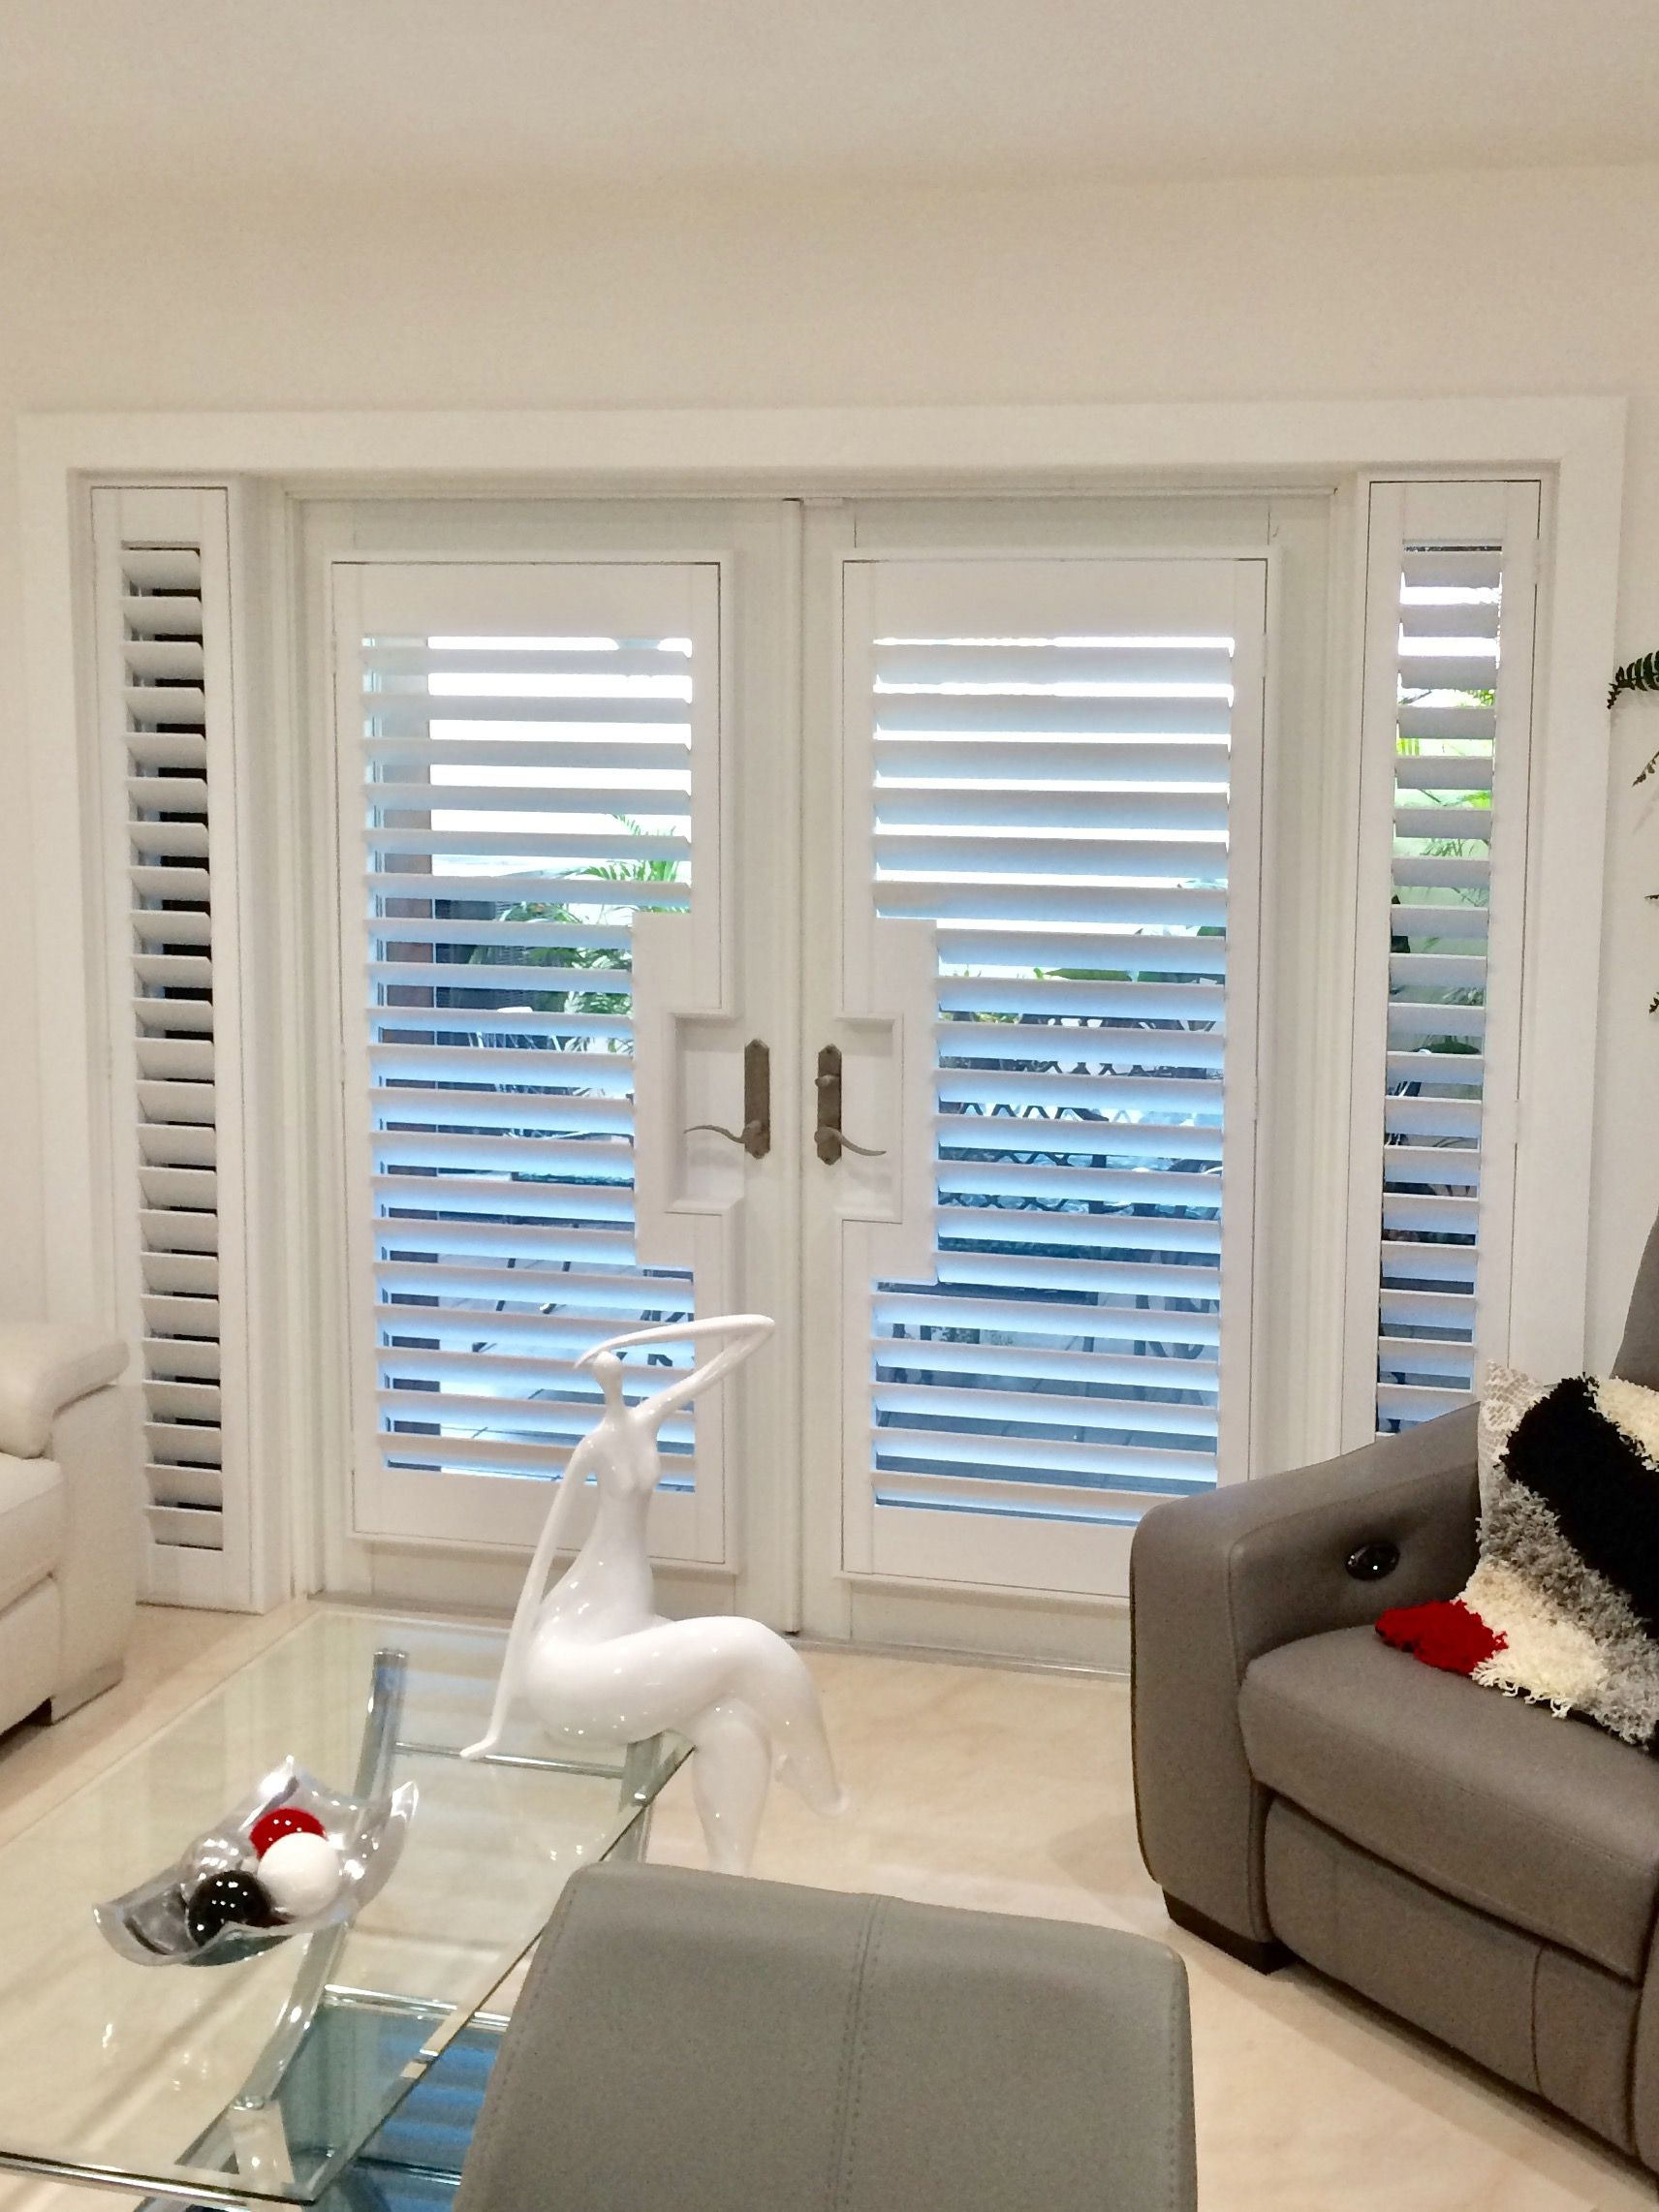 wood ideas accordian full guide treatments blinds cheap bali of sliders buying at staggering blind and sidelight shades windows lowes size plantation lo window shutters for